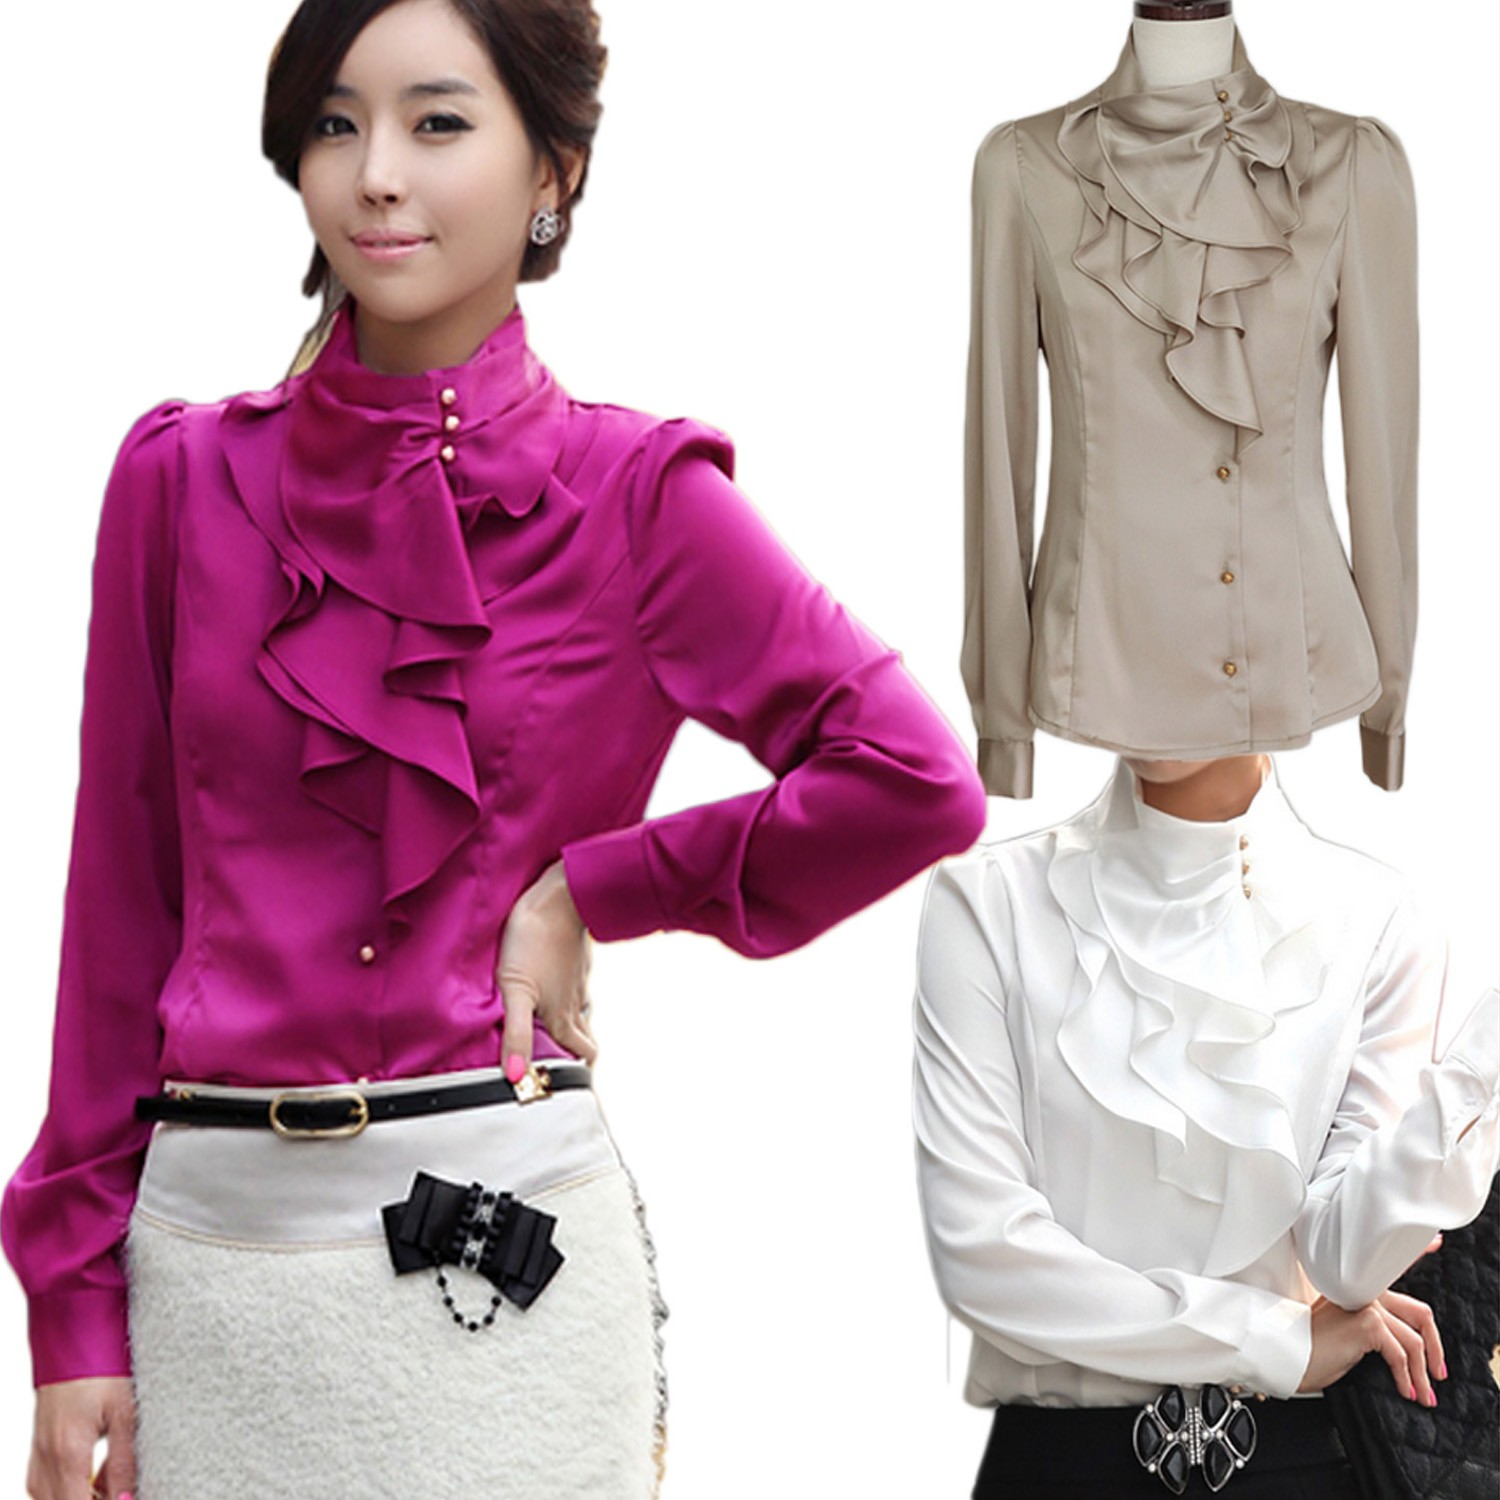 Collar Korea Silky Office Work Shiny Ruffle Shirt Blouse Top AU 6 8 10 12 14